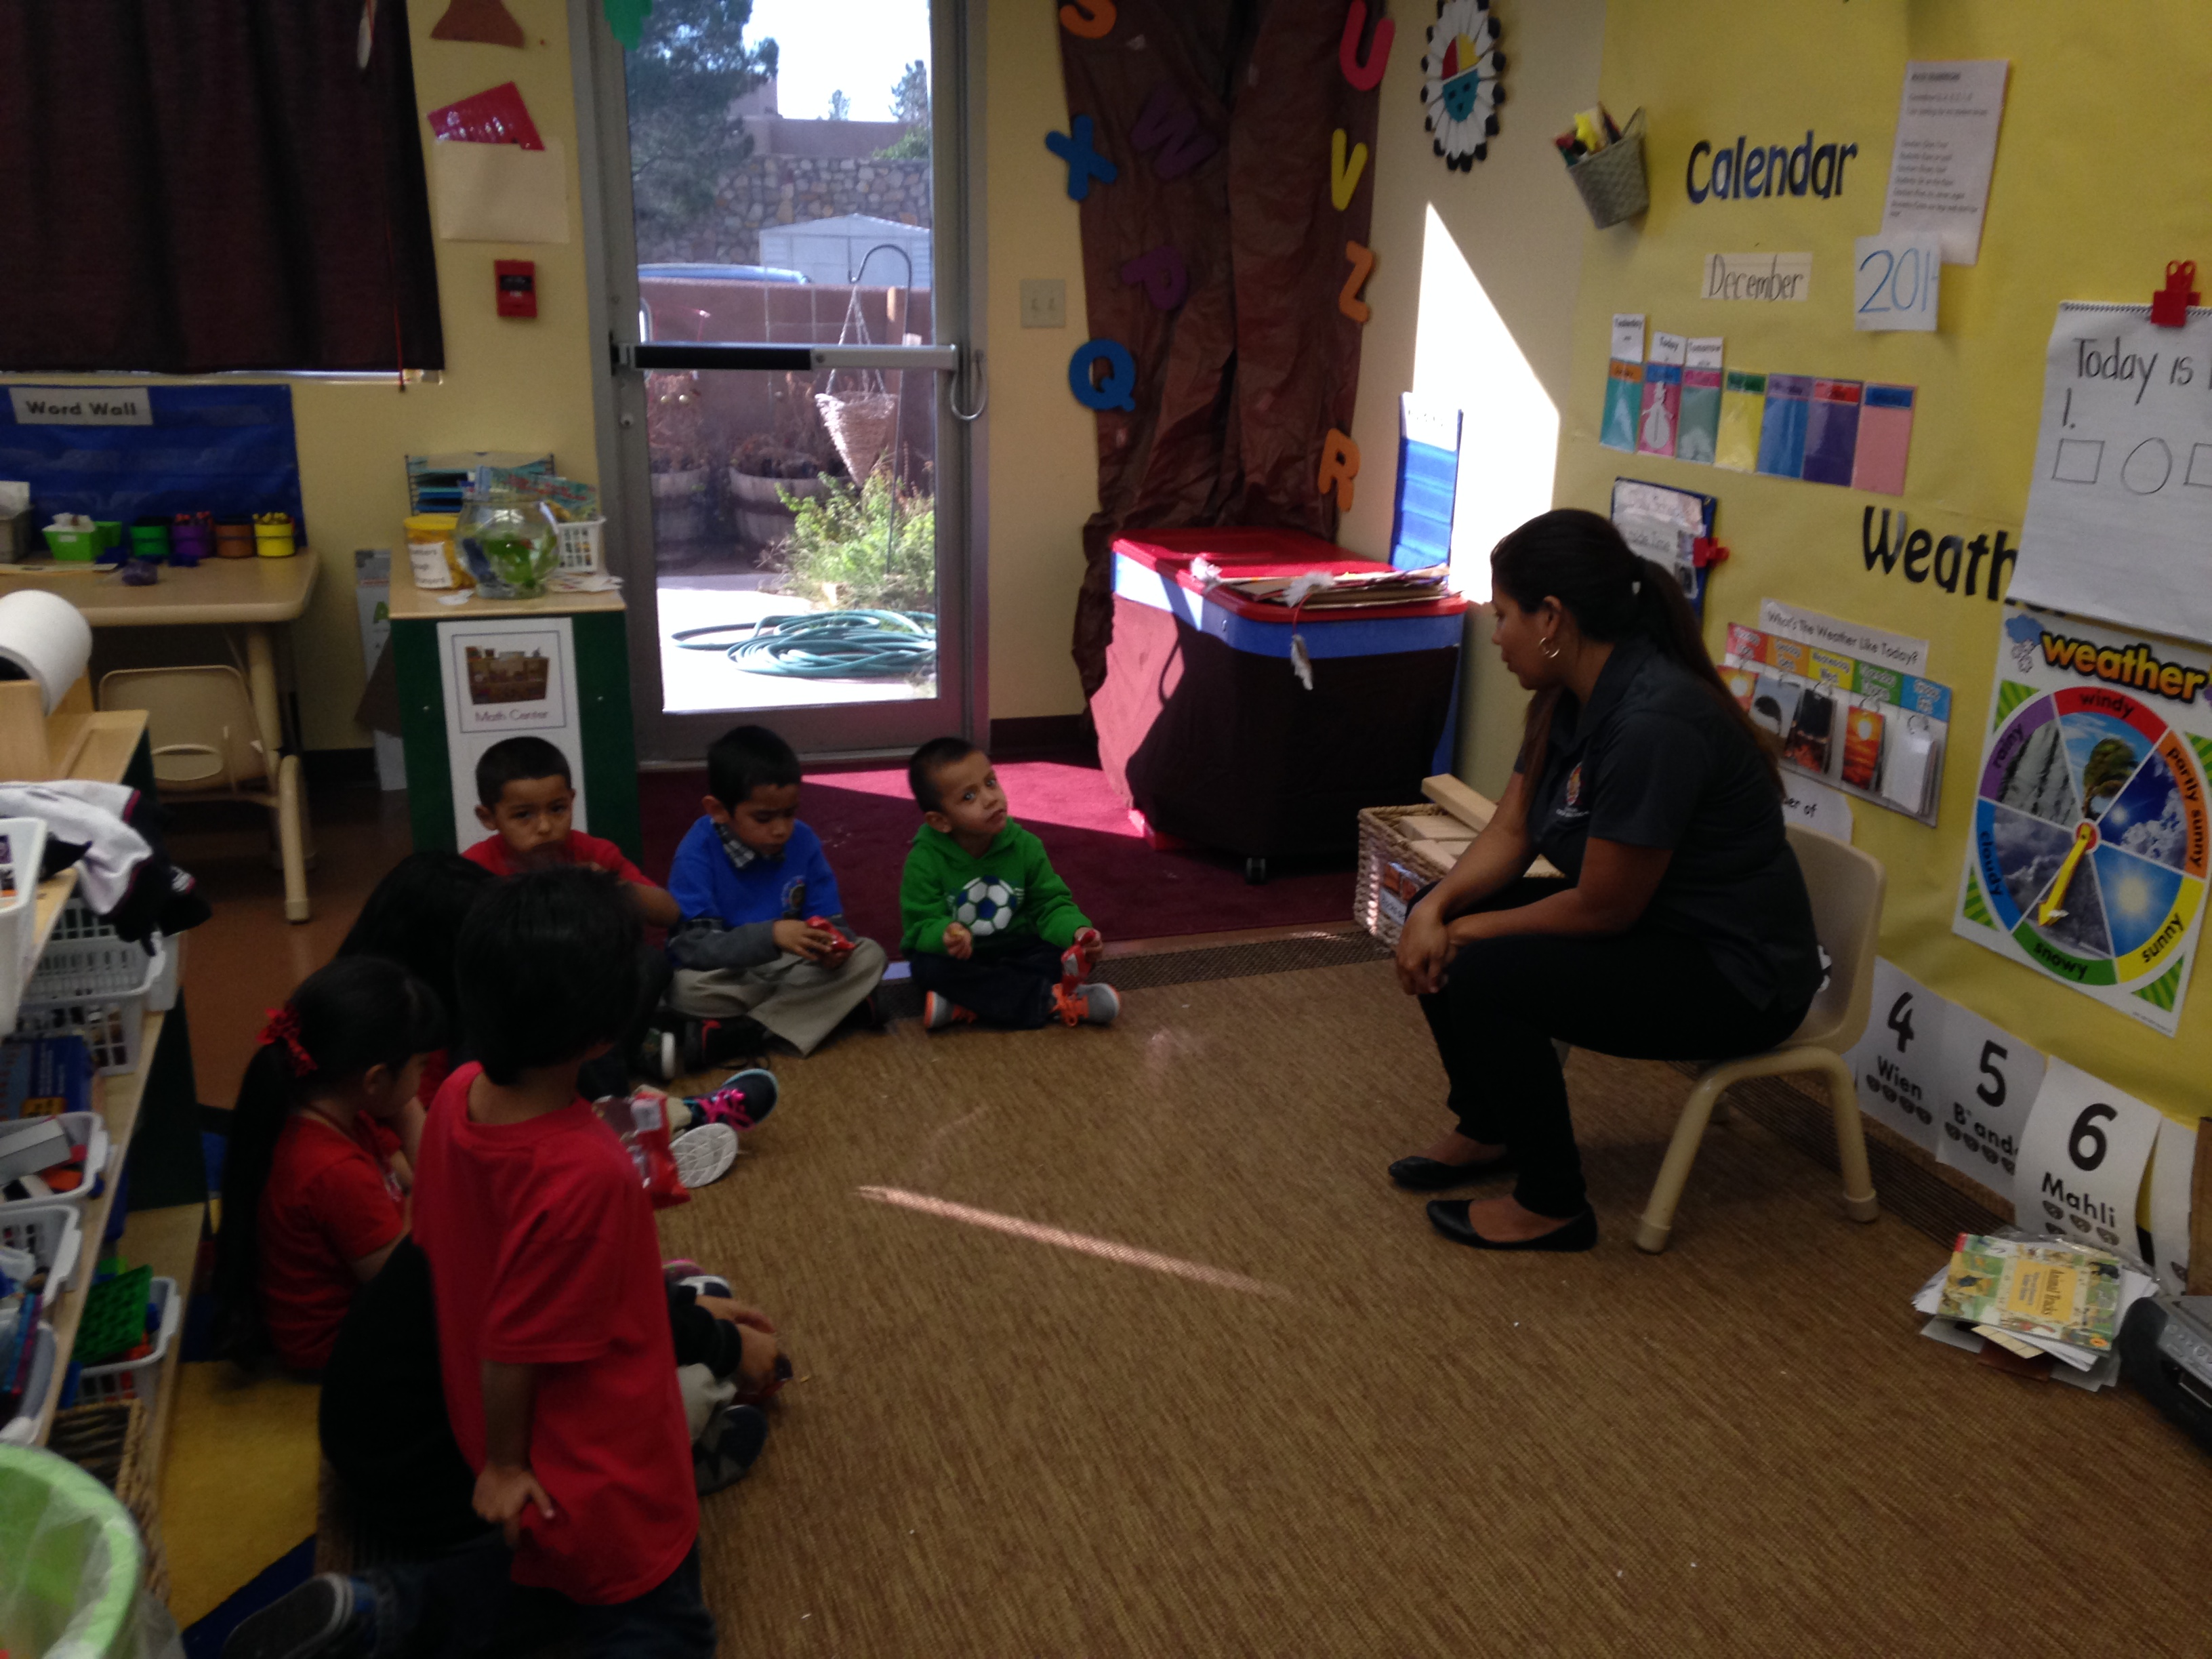 Anna Silvas sits with her Pre-k students to discuss the story that was read to them. Photo credit: Jeraldine Ramos